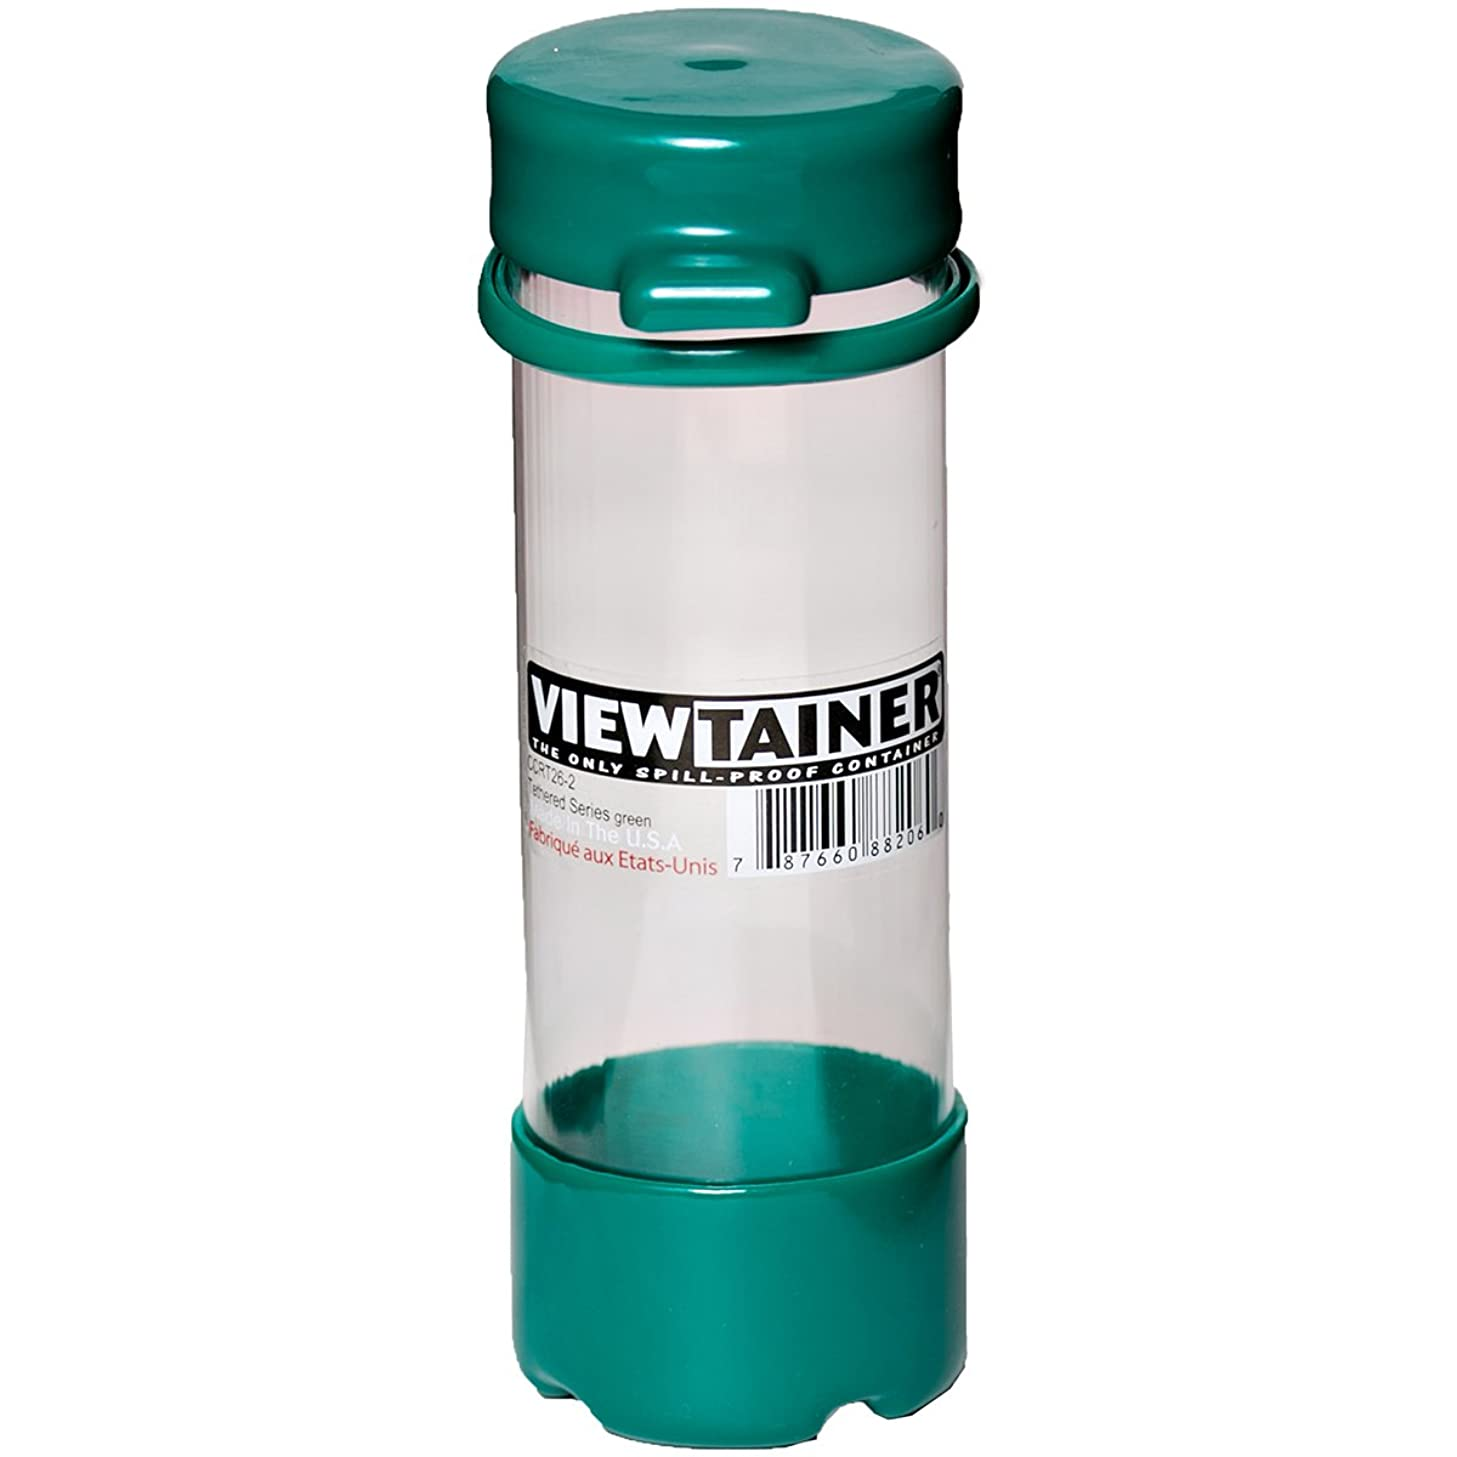 Viewtainer CCRT26-2 Tethered Cap Storage Container 2